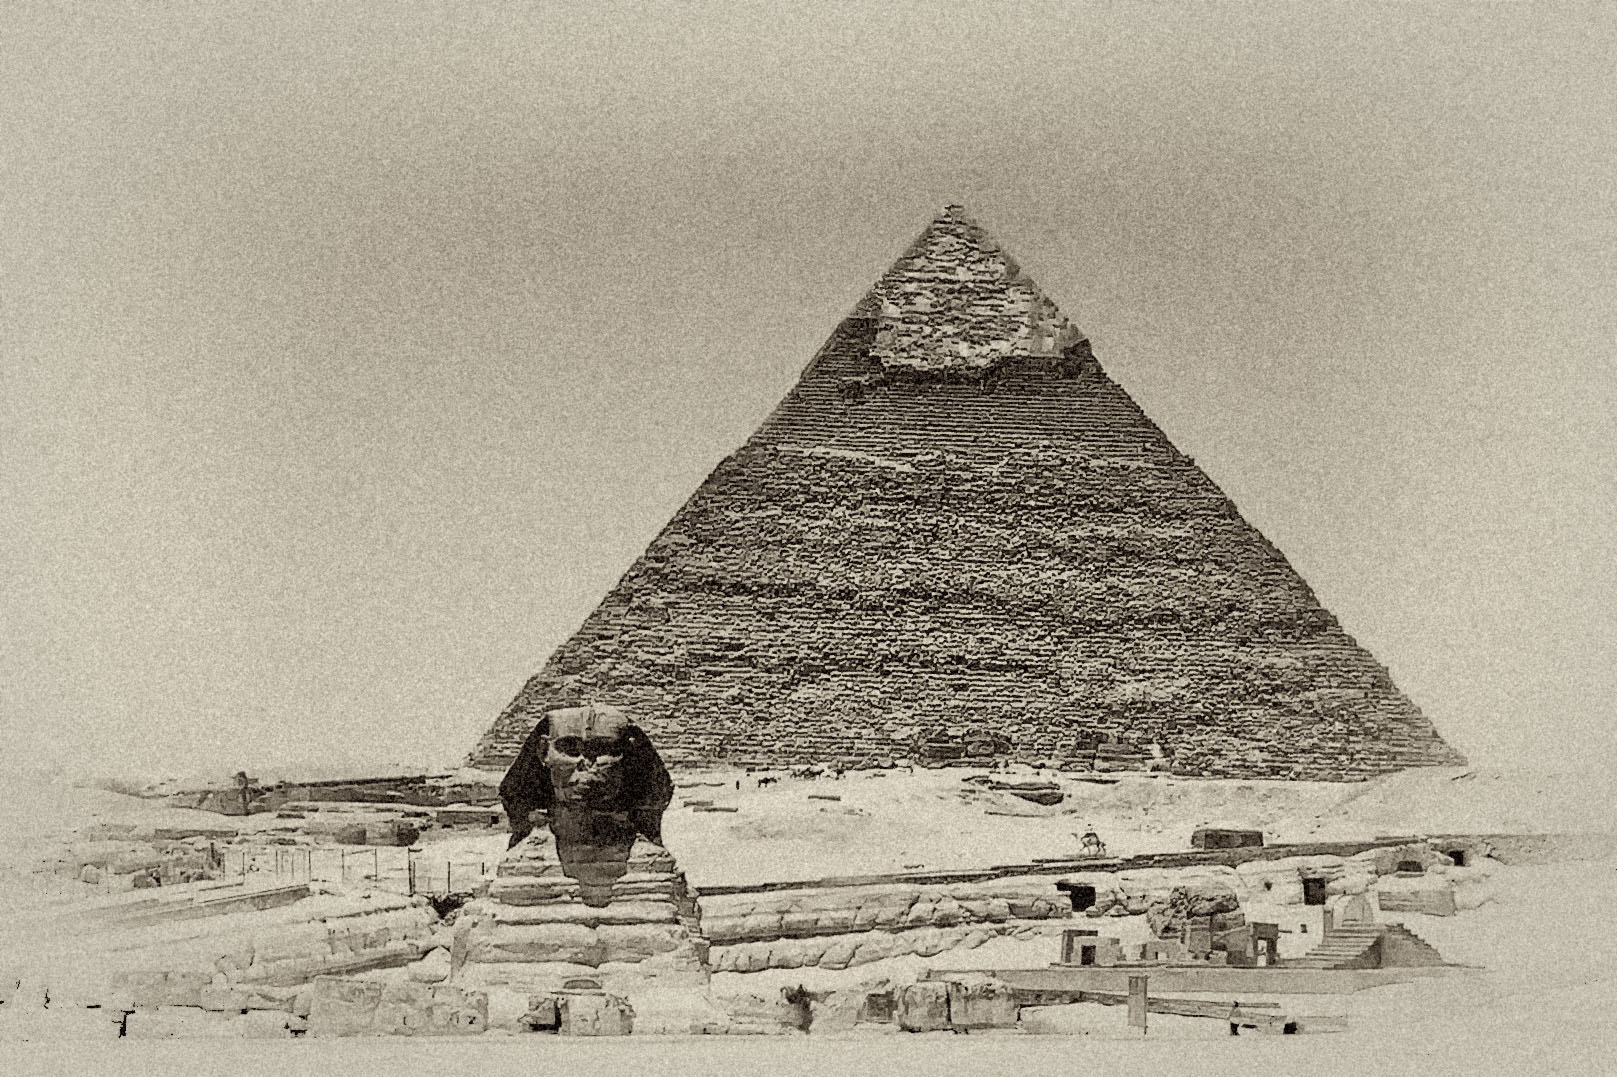 Photograph The Sphinx and the Pyramid of Khafre by David Abrantes on 500px